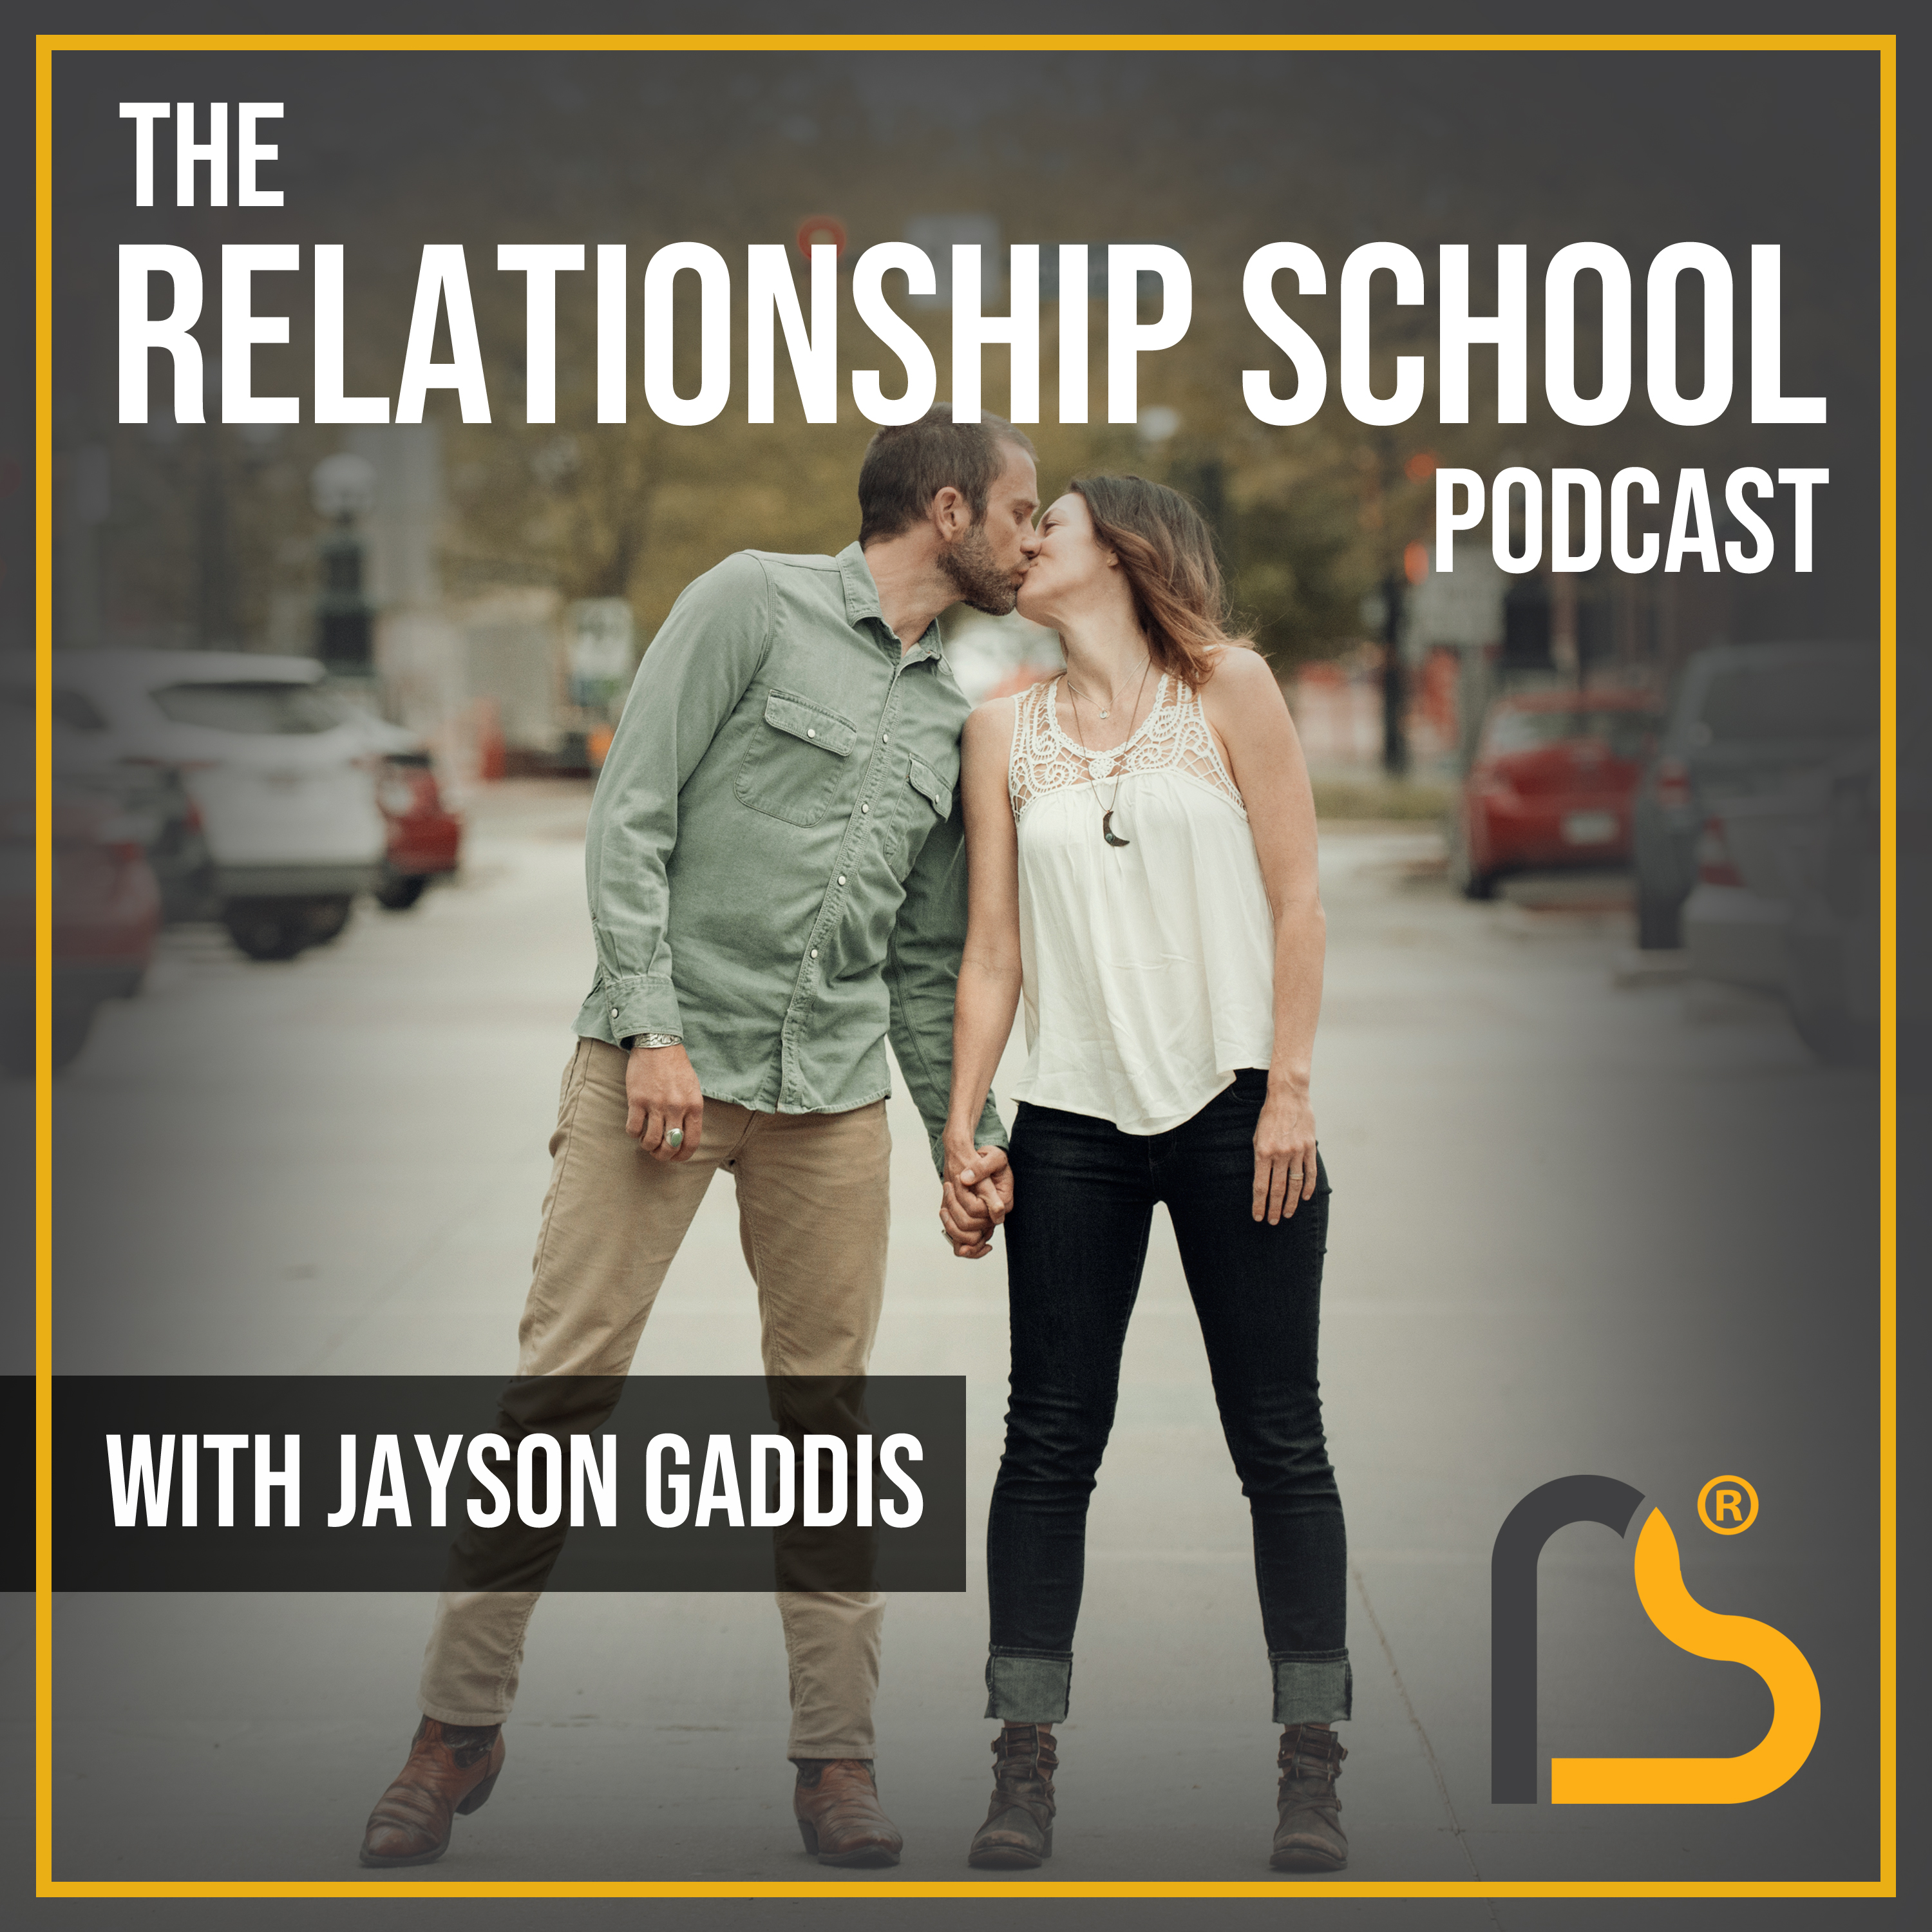 The Relationship School Podcast - Spiritual Development vs. Relational Development - Relationship School Podcast EPISODE 262